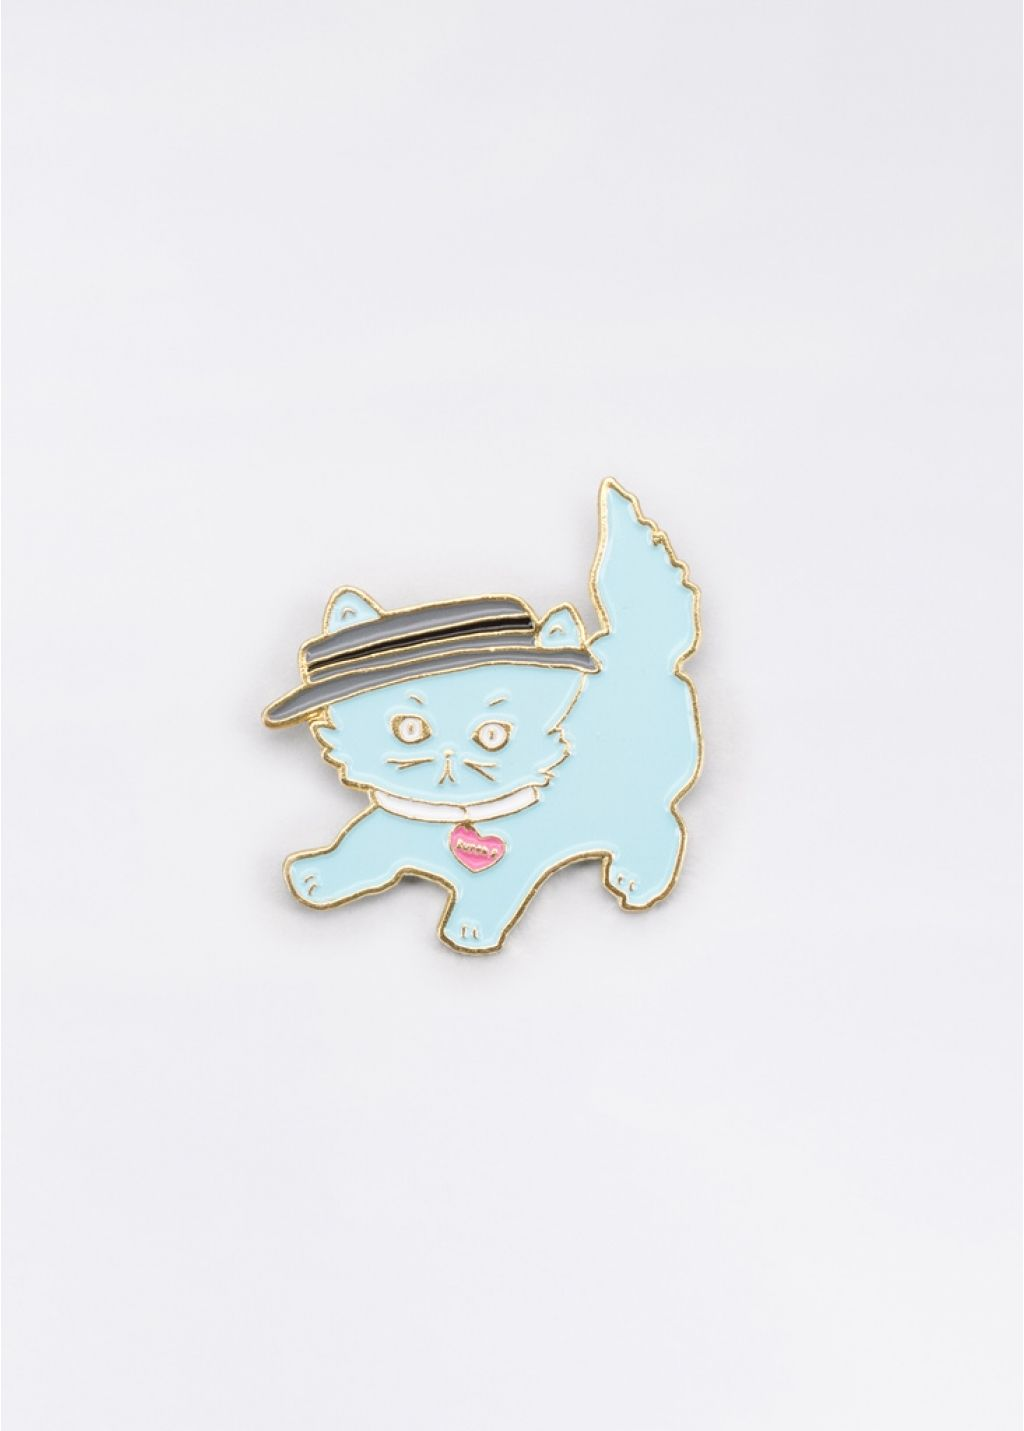 The Buster Kitten Pin By Natalie Morales Pin And Patches Wildfang Kitten